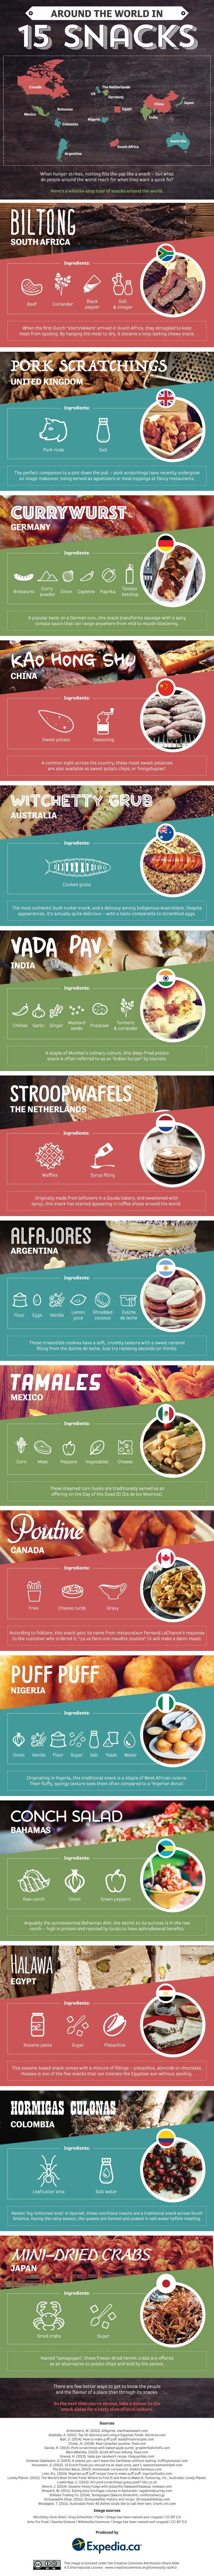 Around the World in 15 Snacks #infographic